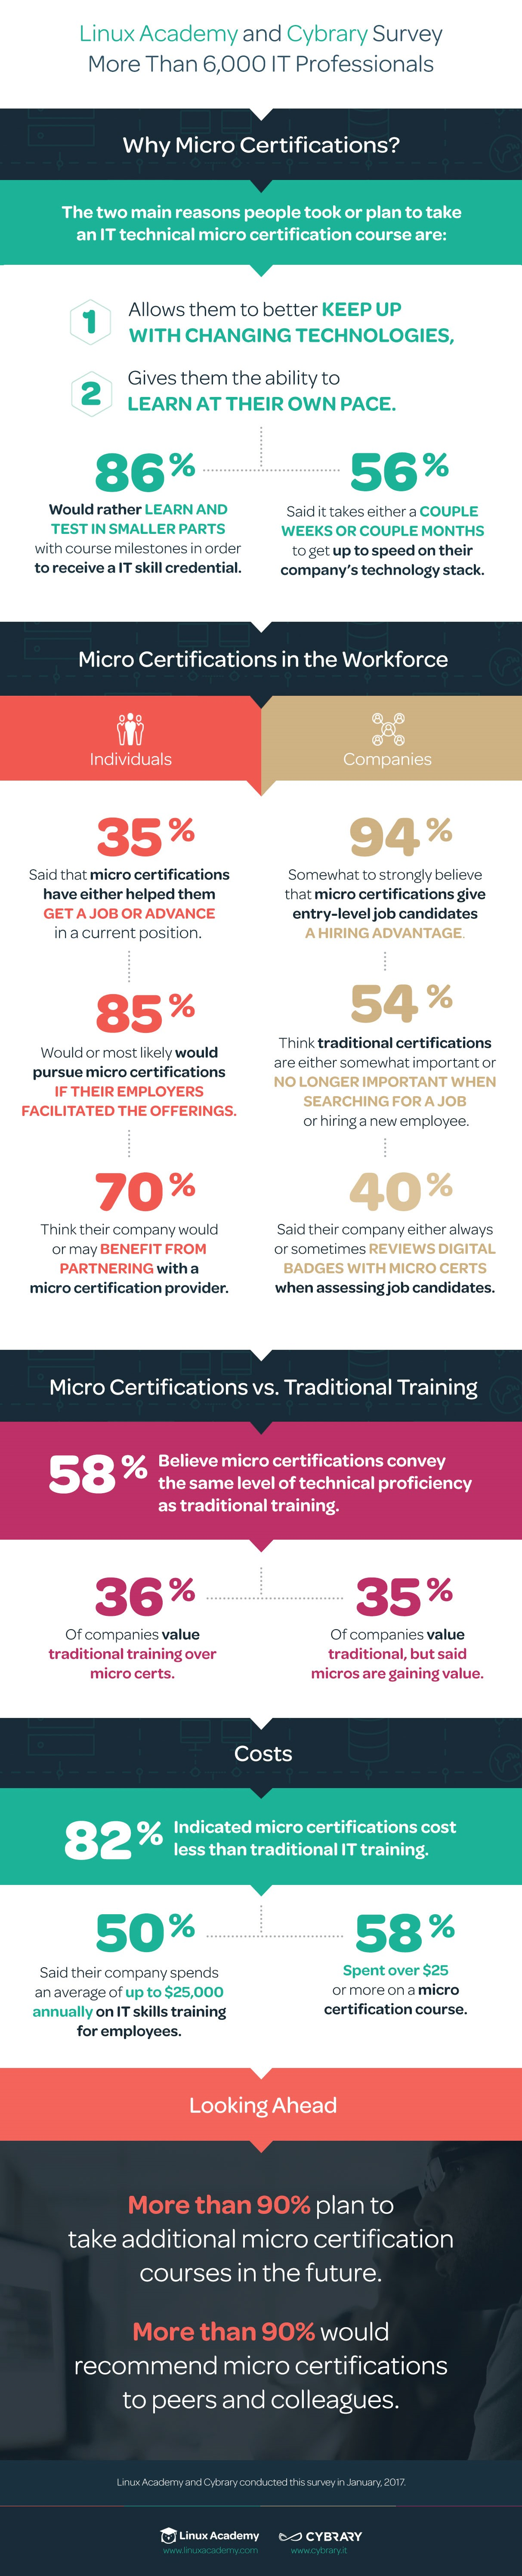 micro-cert-survey-infographic-1213x6502px-high-2